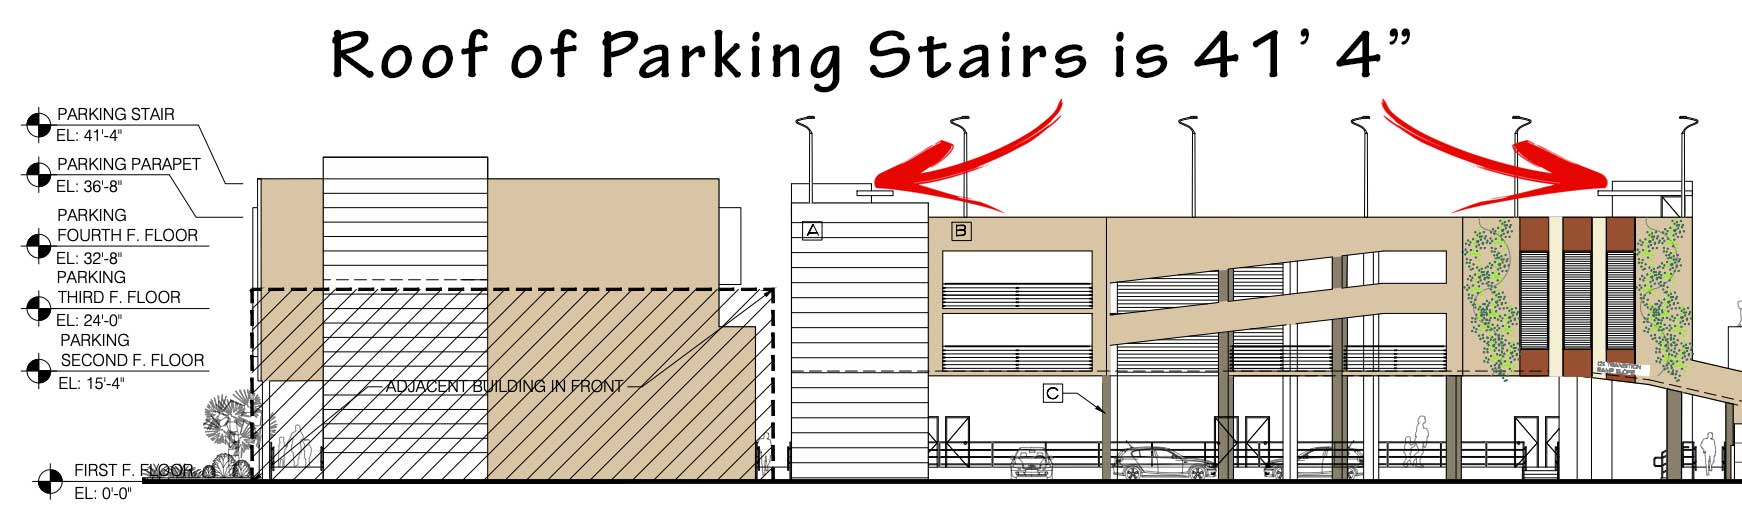 Parking Garage Stairwell Roof Height Exceeds 40' Limit